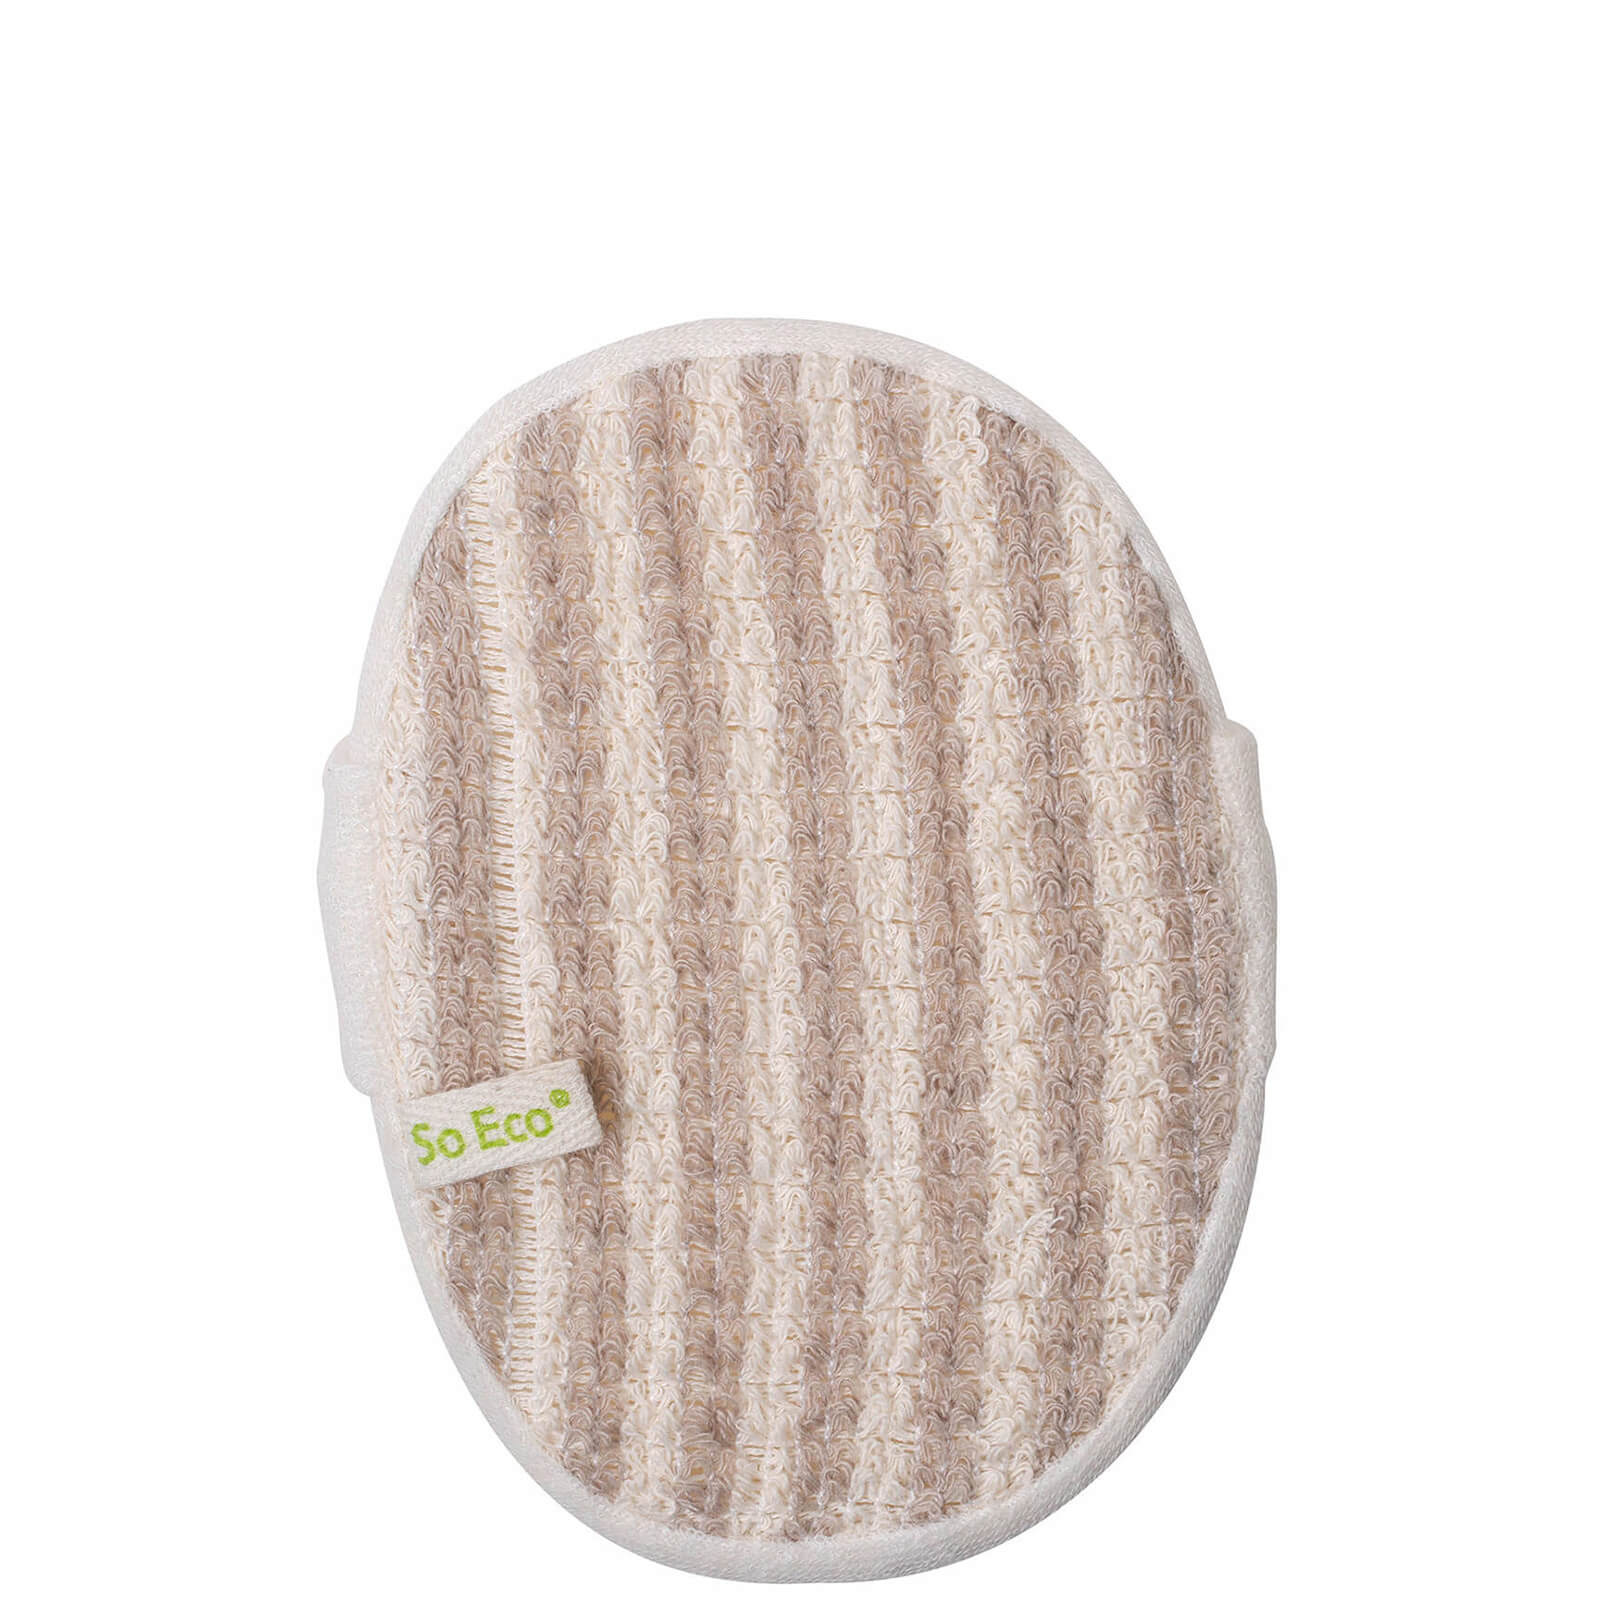 So Eco Gentle Exfoliating Sponge de So Eco